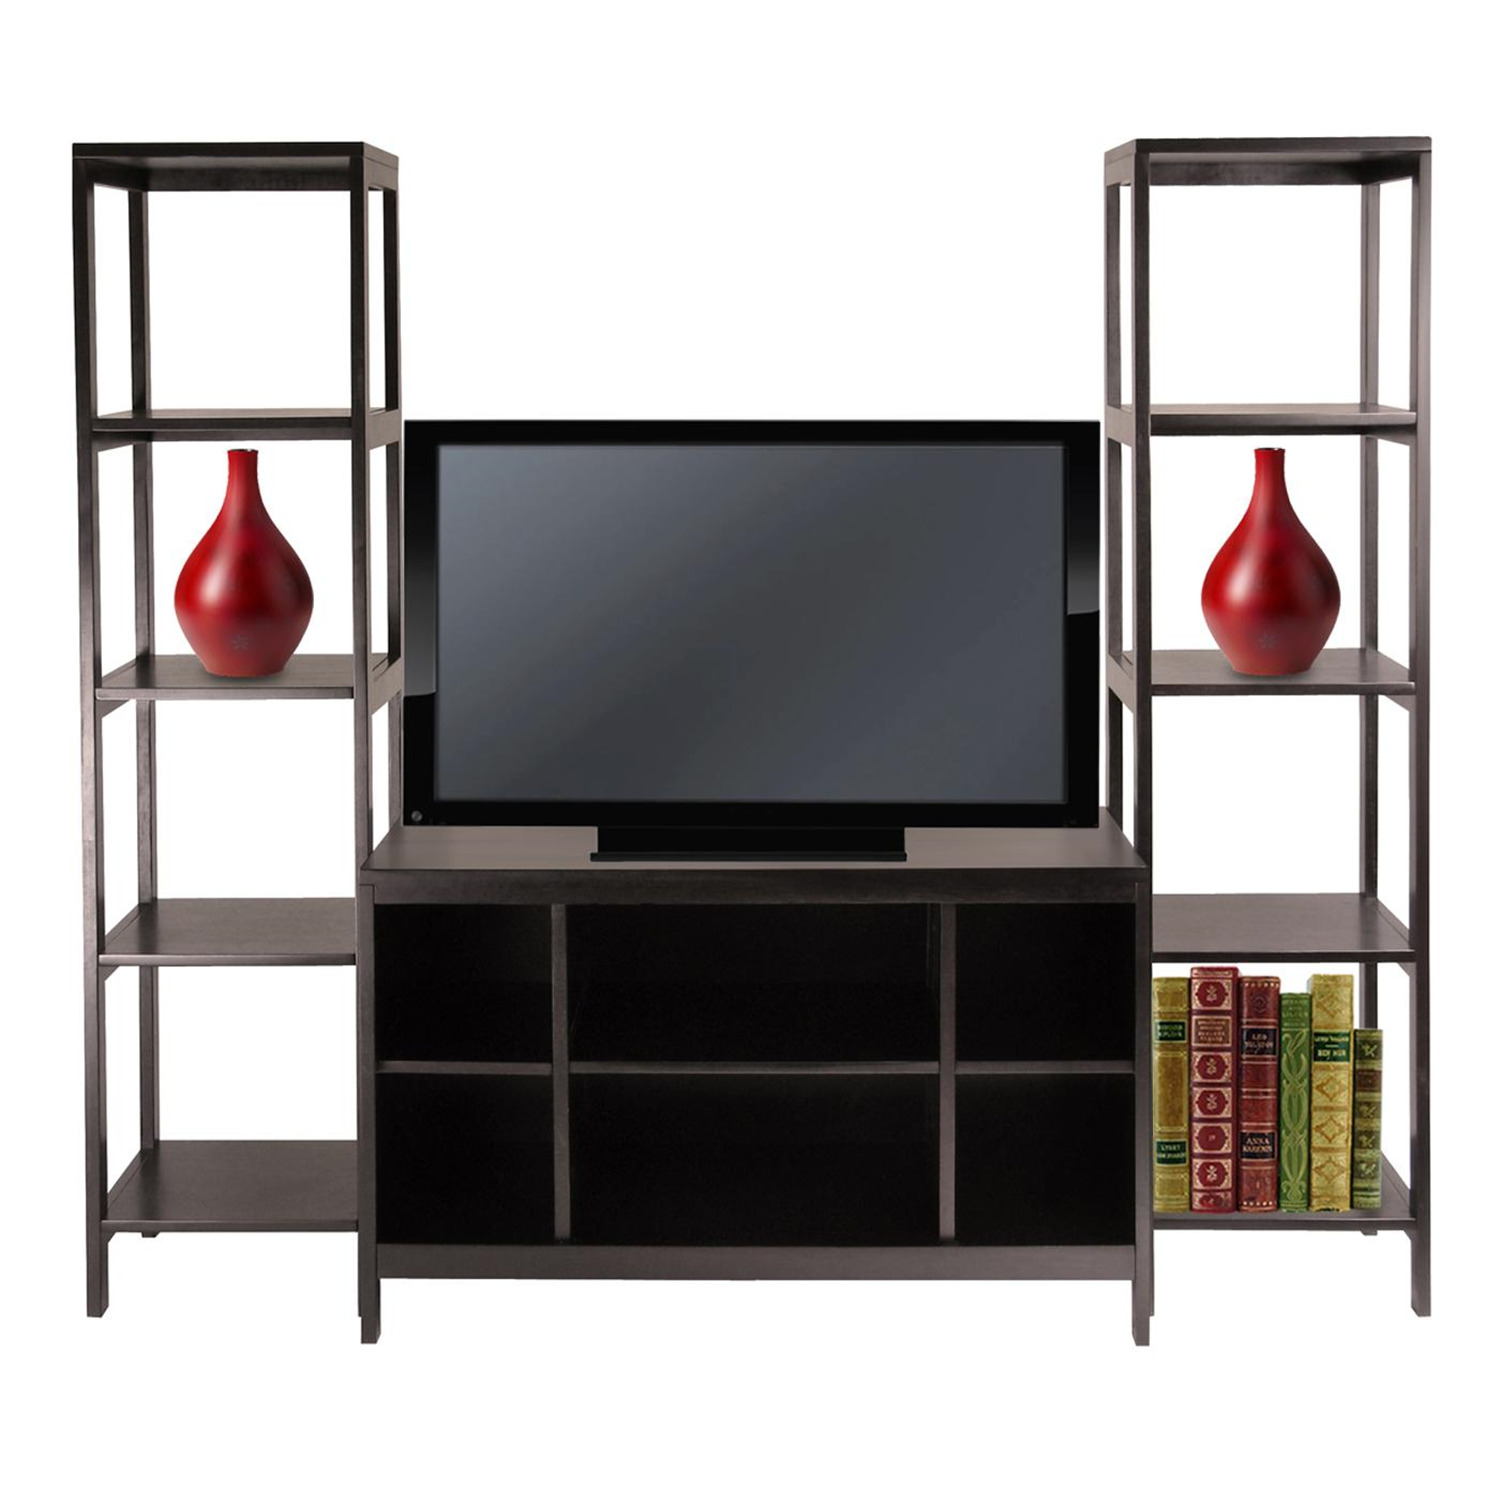 furniture home goods appliances athletic gear fitness toys baby products musical. Black Bedroom Furniture Sets. Home Design Ideas